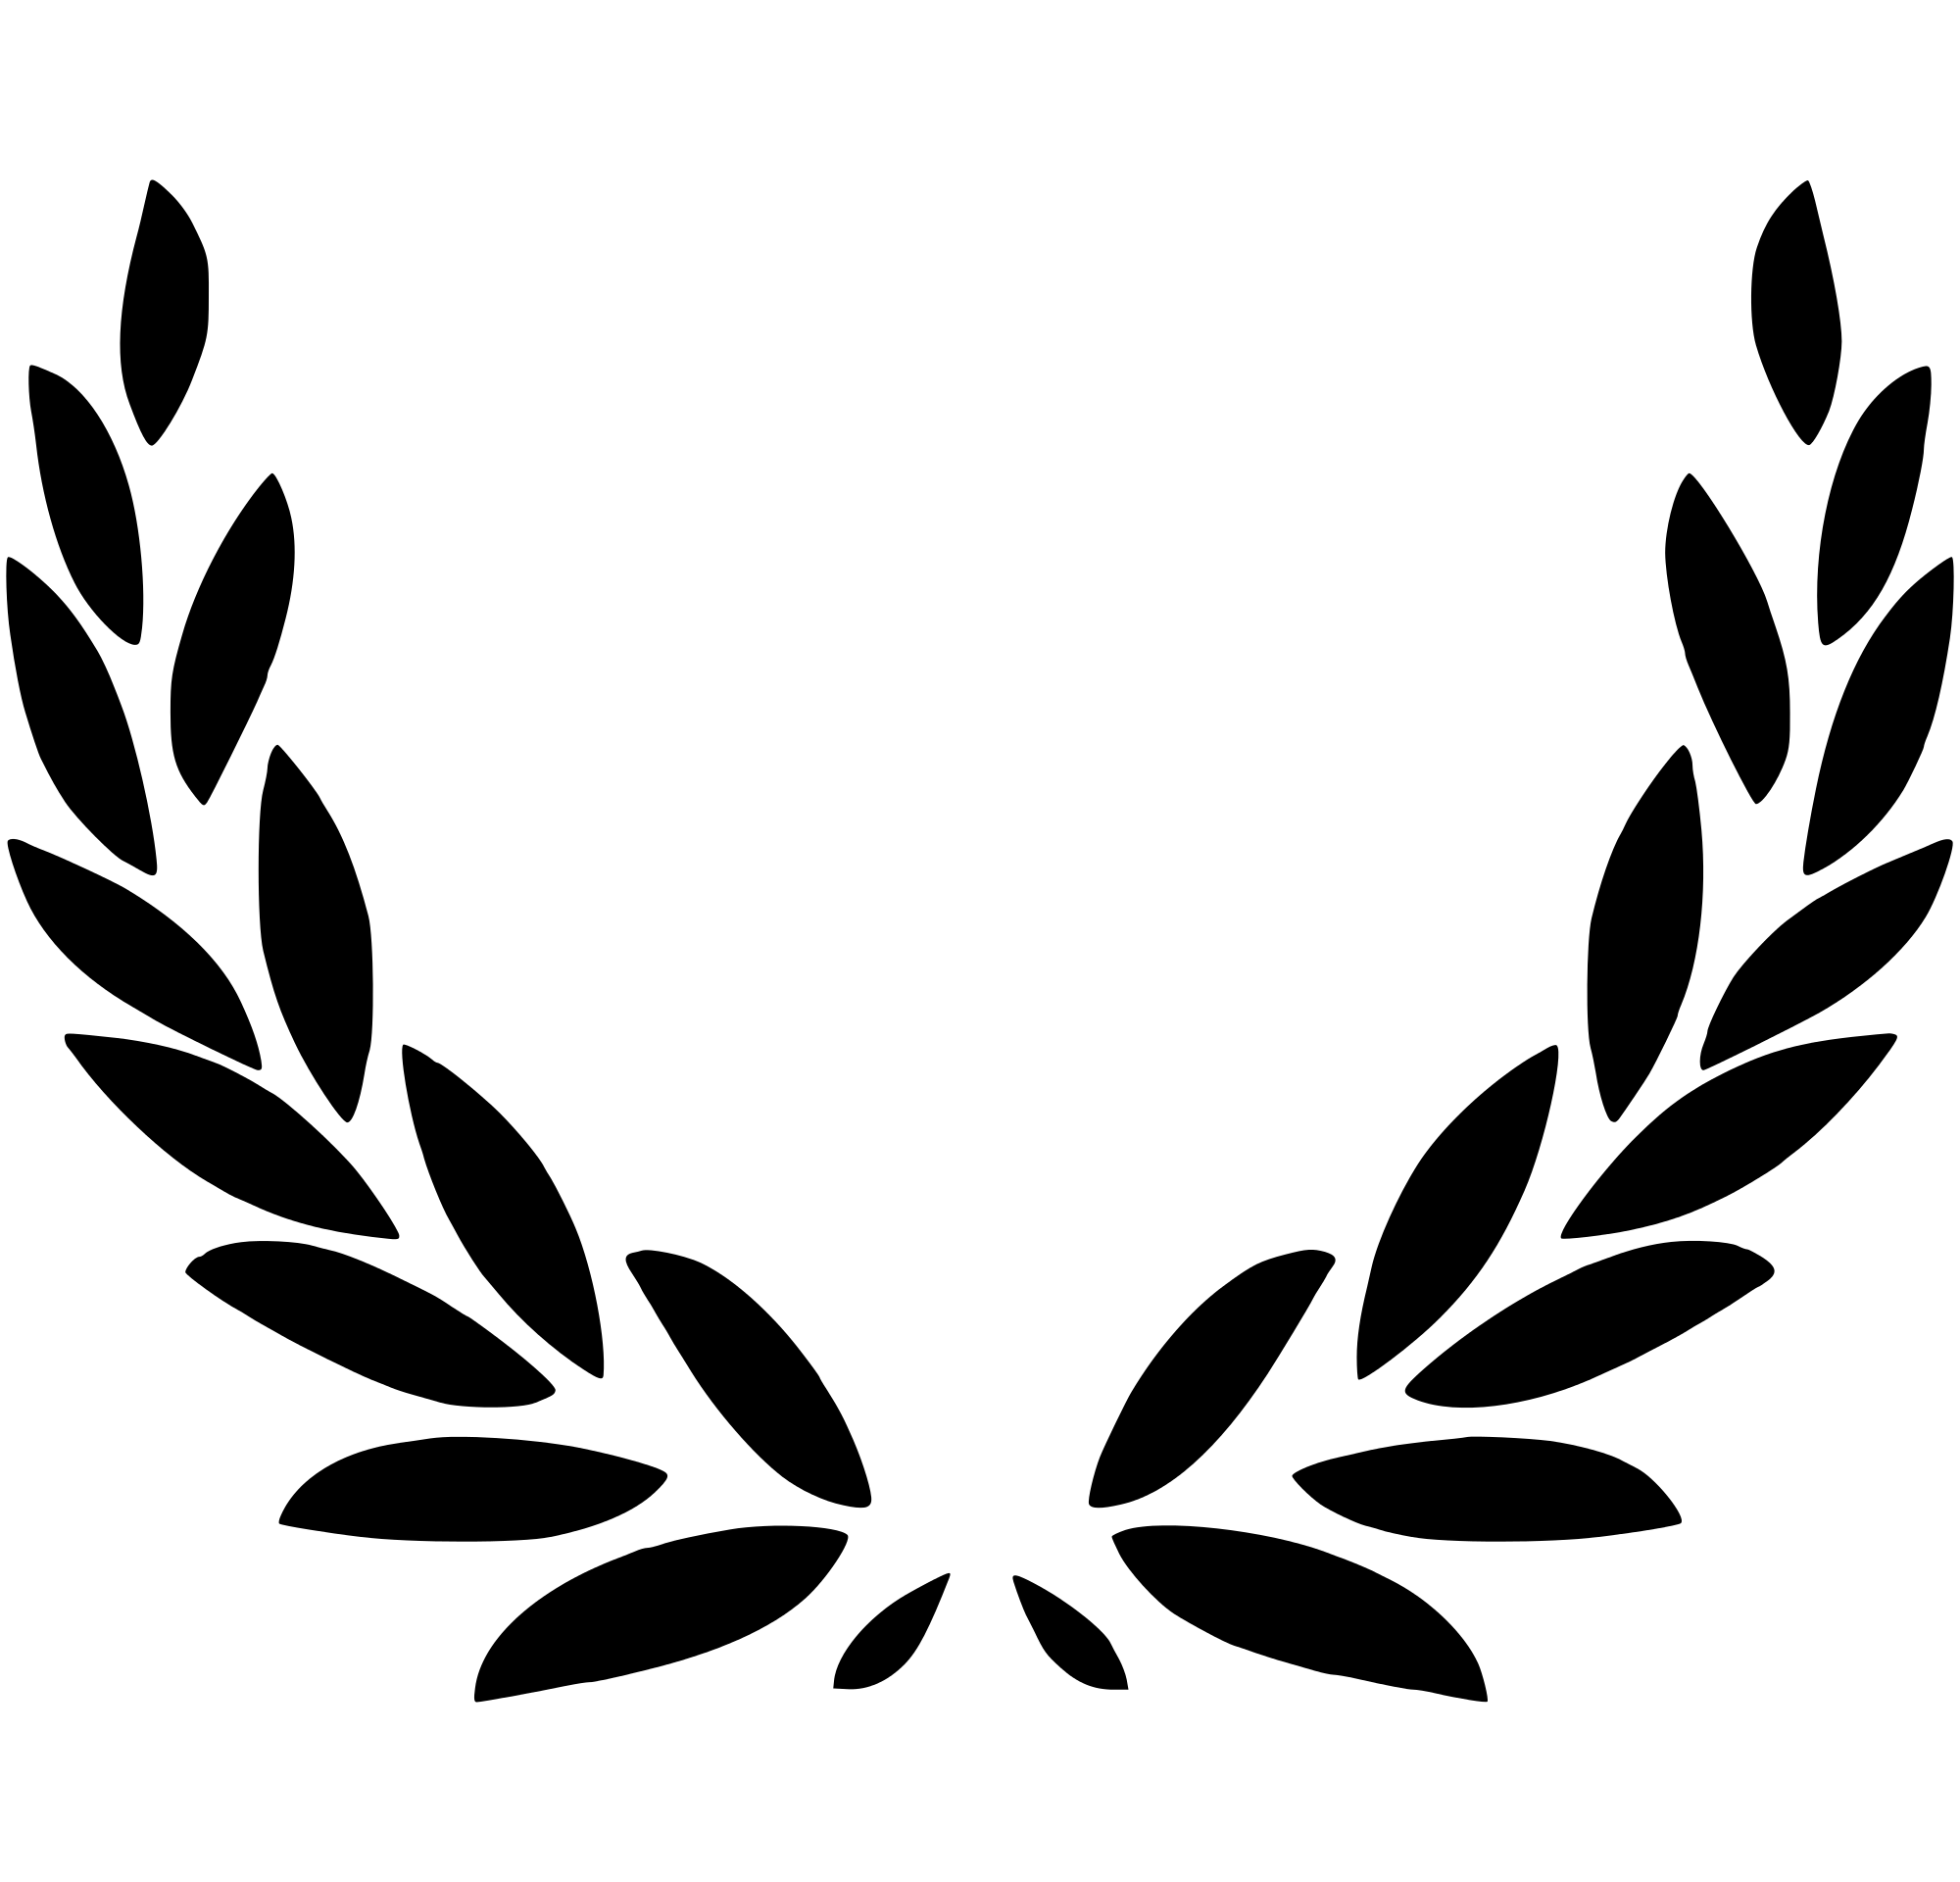 Laurel png. File svg wikimedia commons